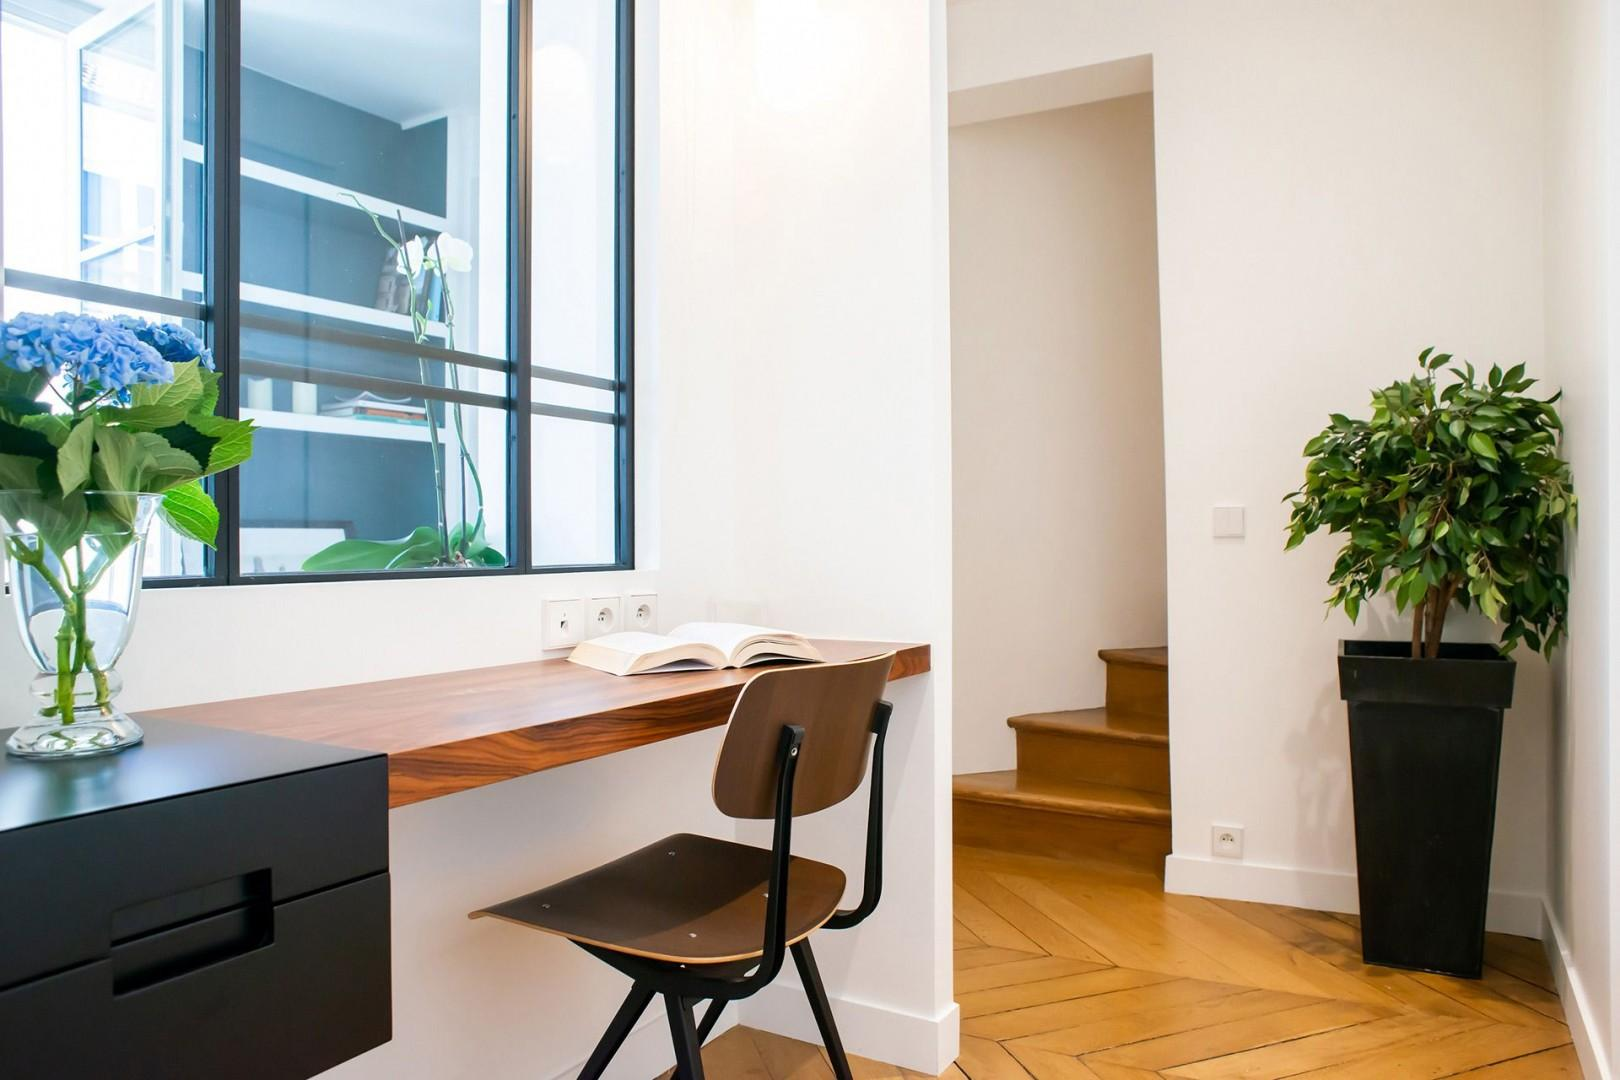 An office space makes a clever addition to the hallway